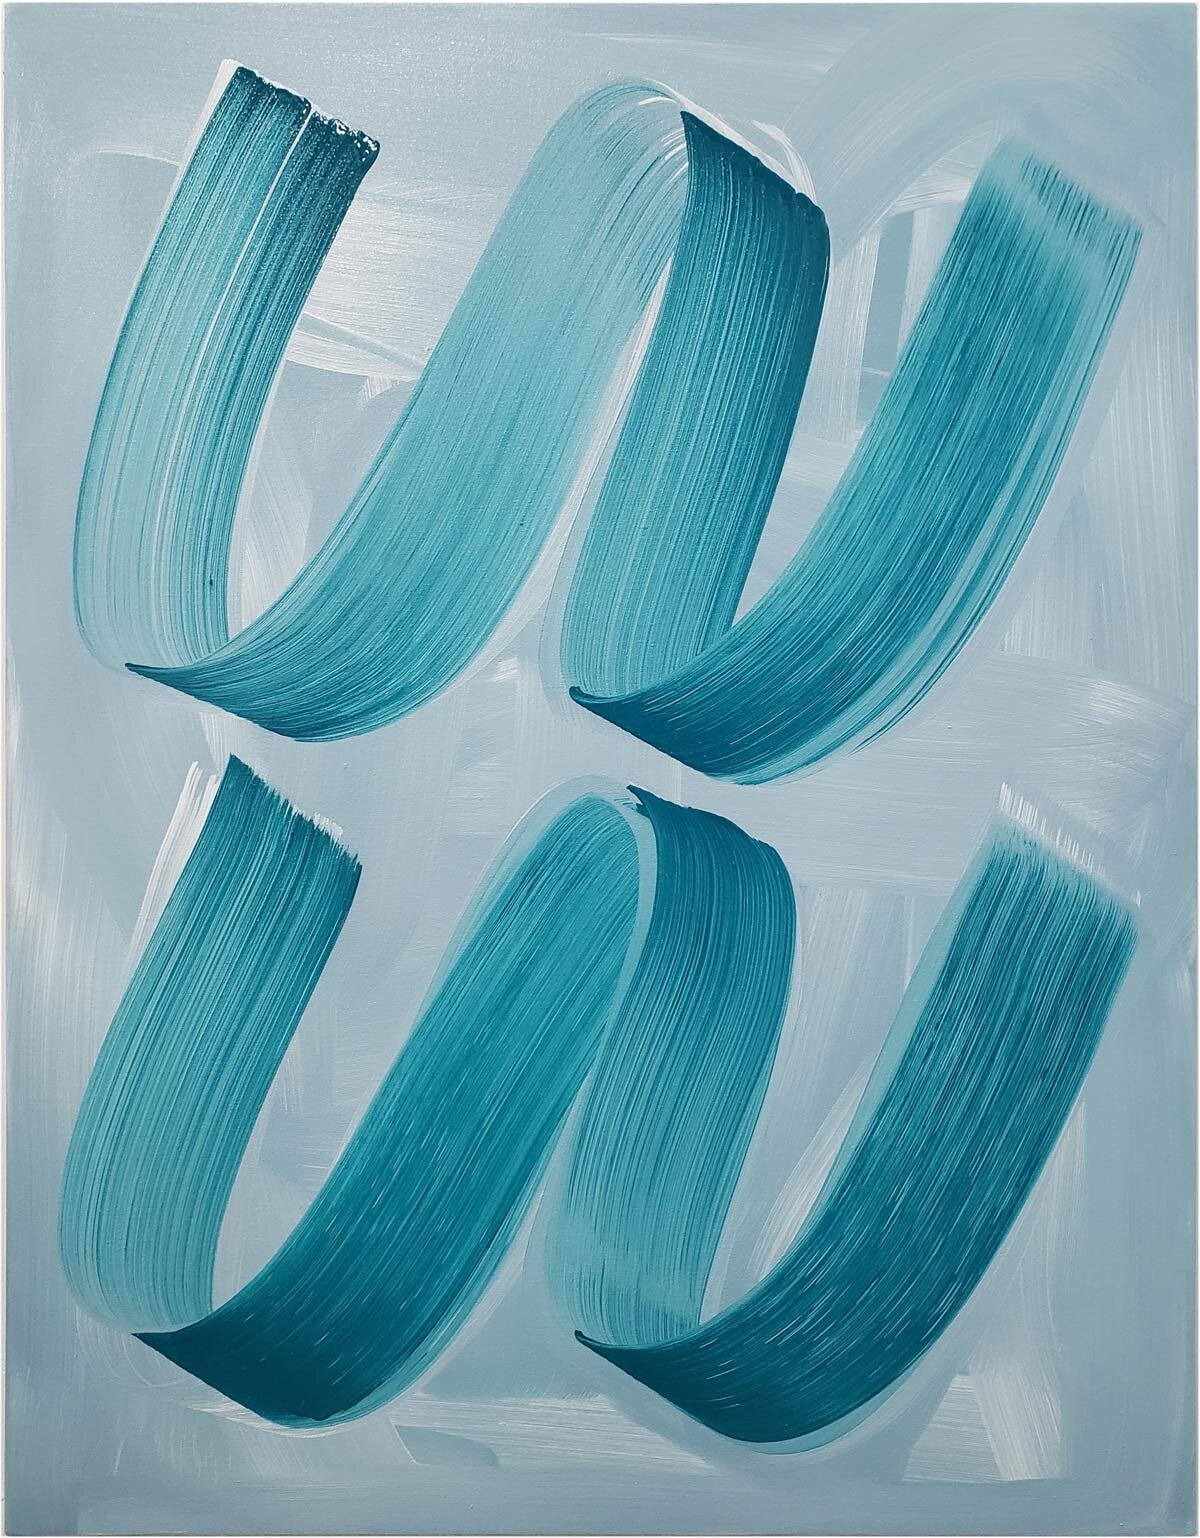 Do-si-do , 2019 oil on canvas 36 x 28 in.